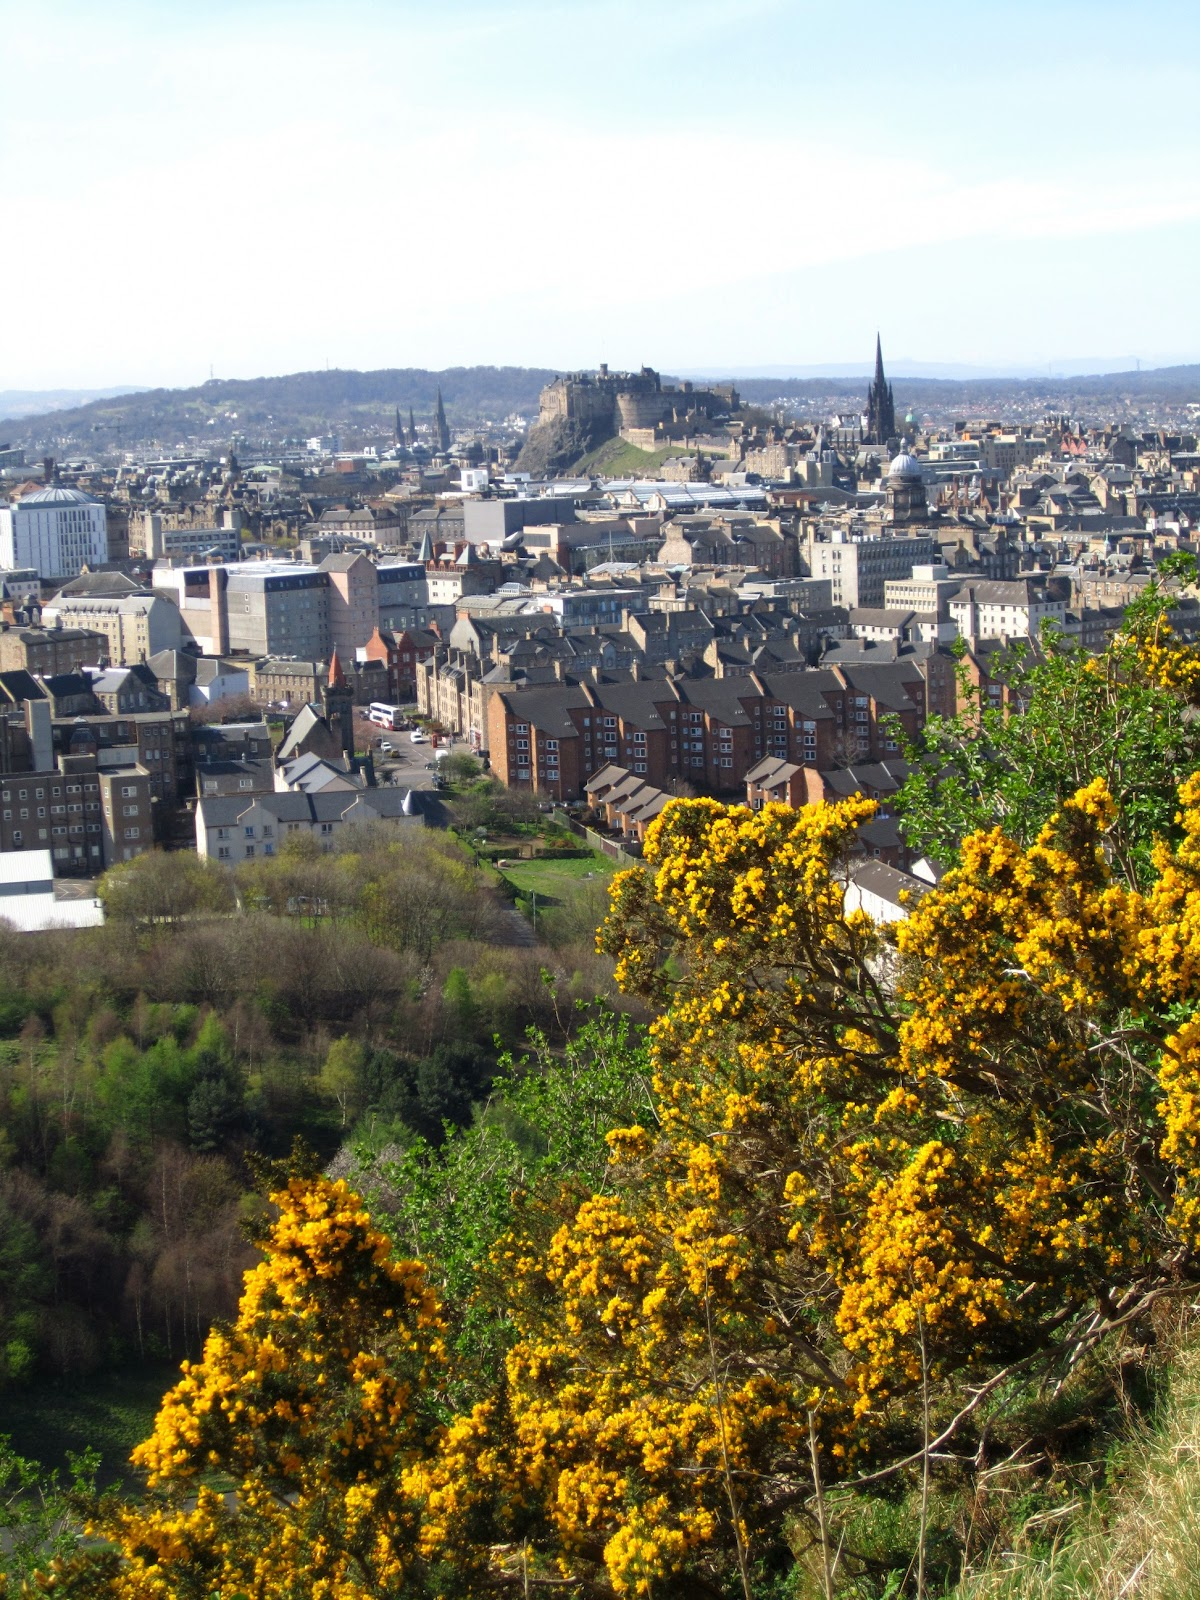 I traveled to Scotland for a week in Spring 2012. The first couple days were spent in Edinburgh, as were the last two. The city's haunting beauty, charming people and immense history totally enchanted me. One of my favorite cities!